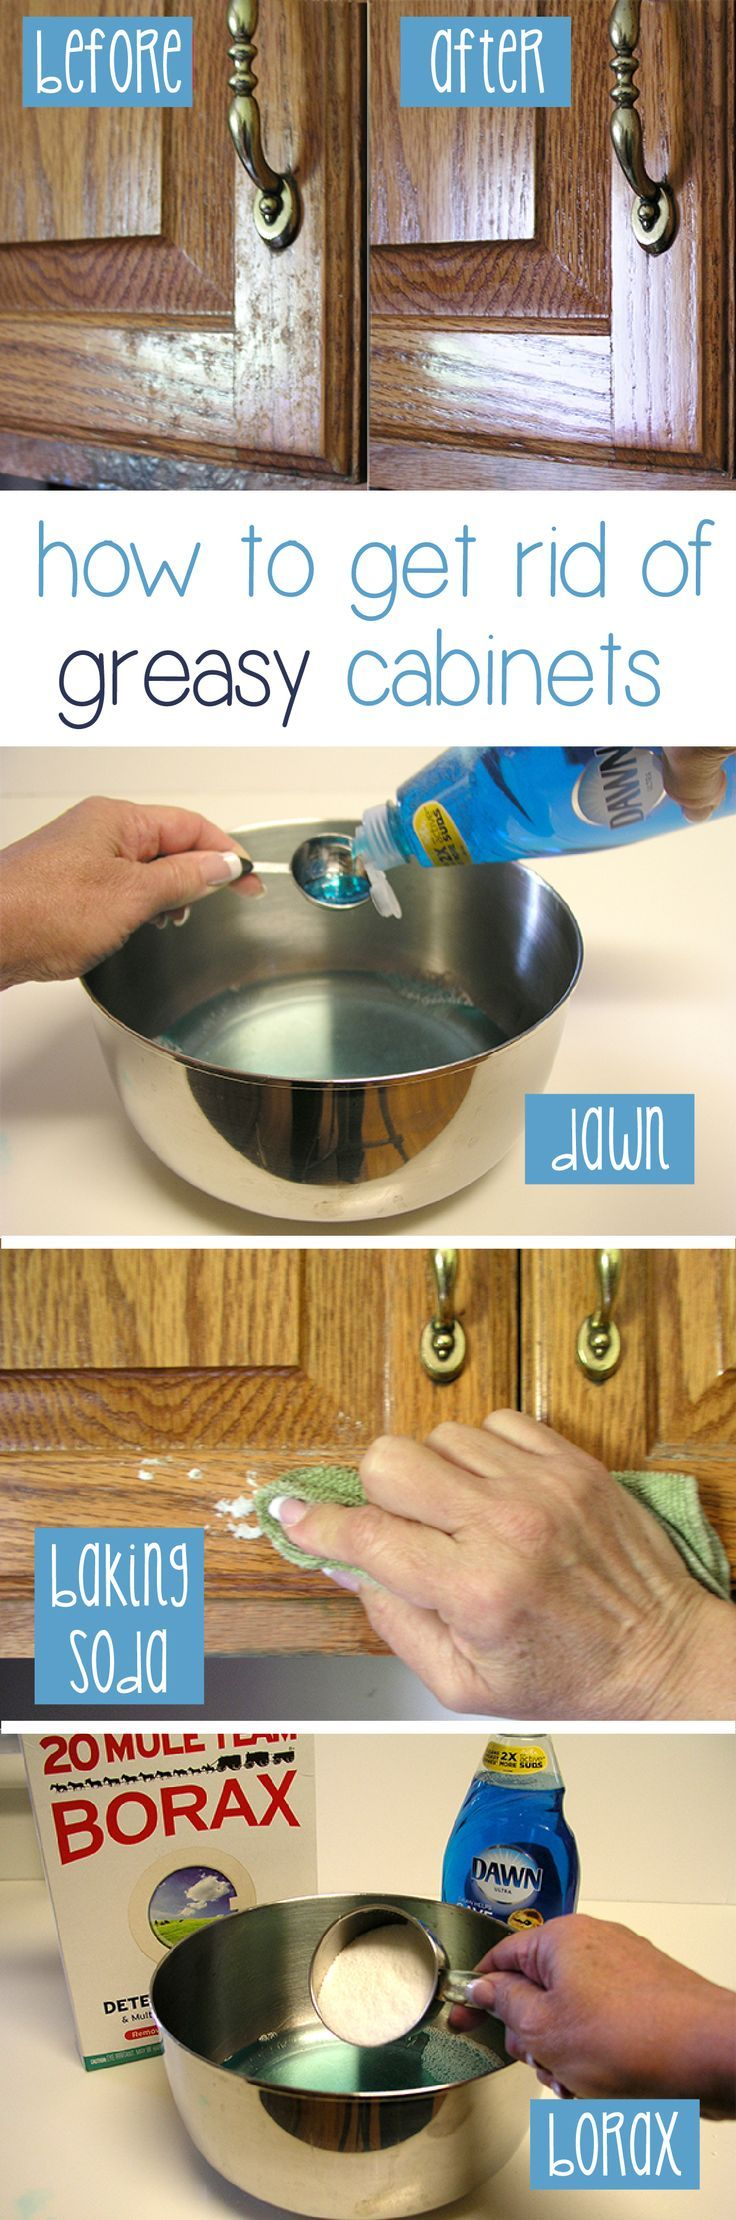 how to clean grease from kitchen cabinet doors today pinterest rh pinterest it